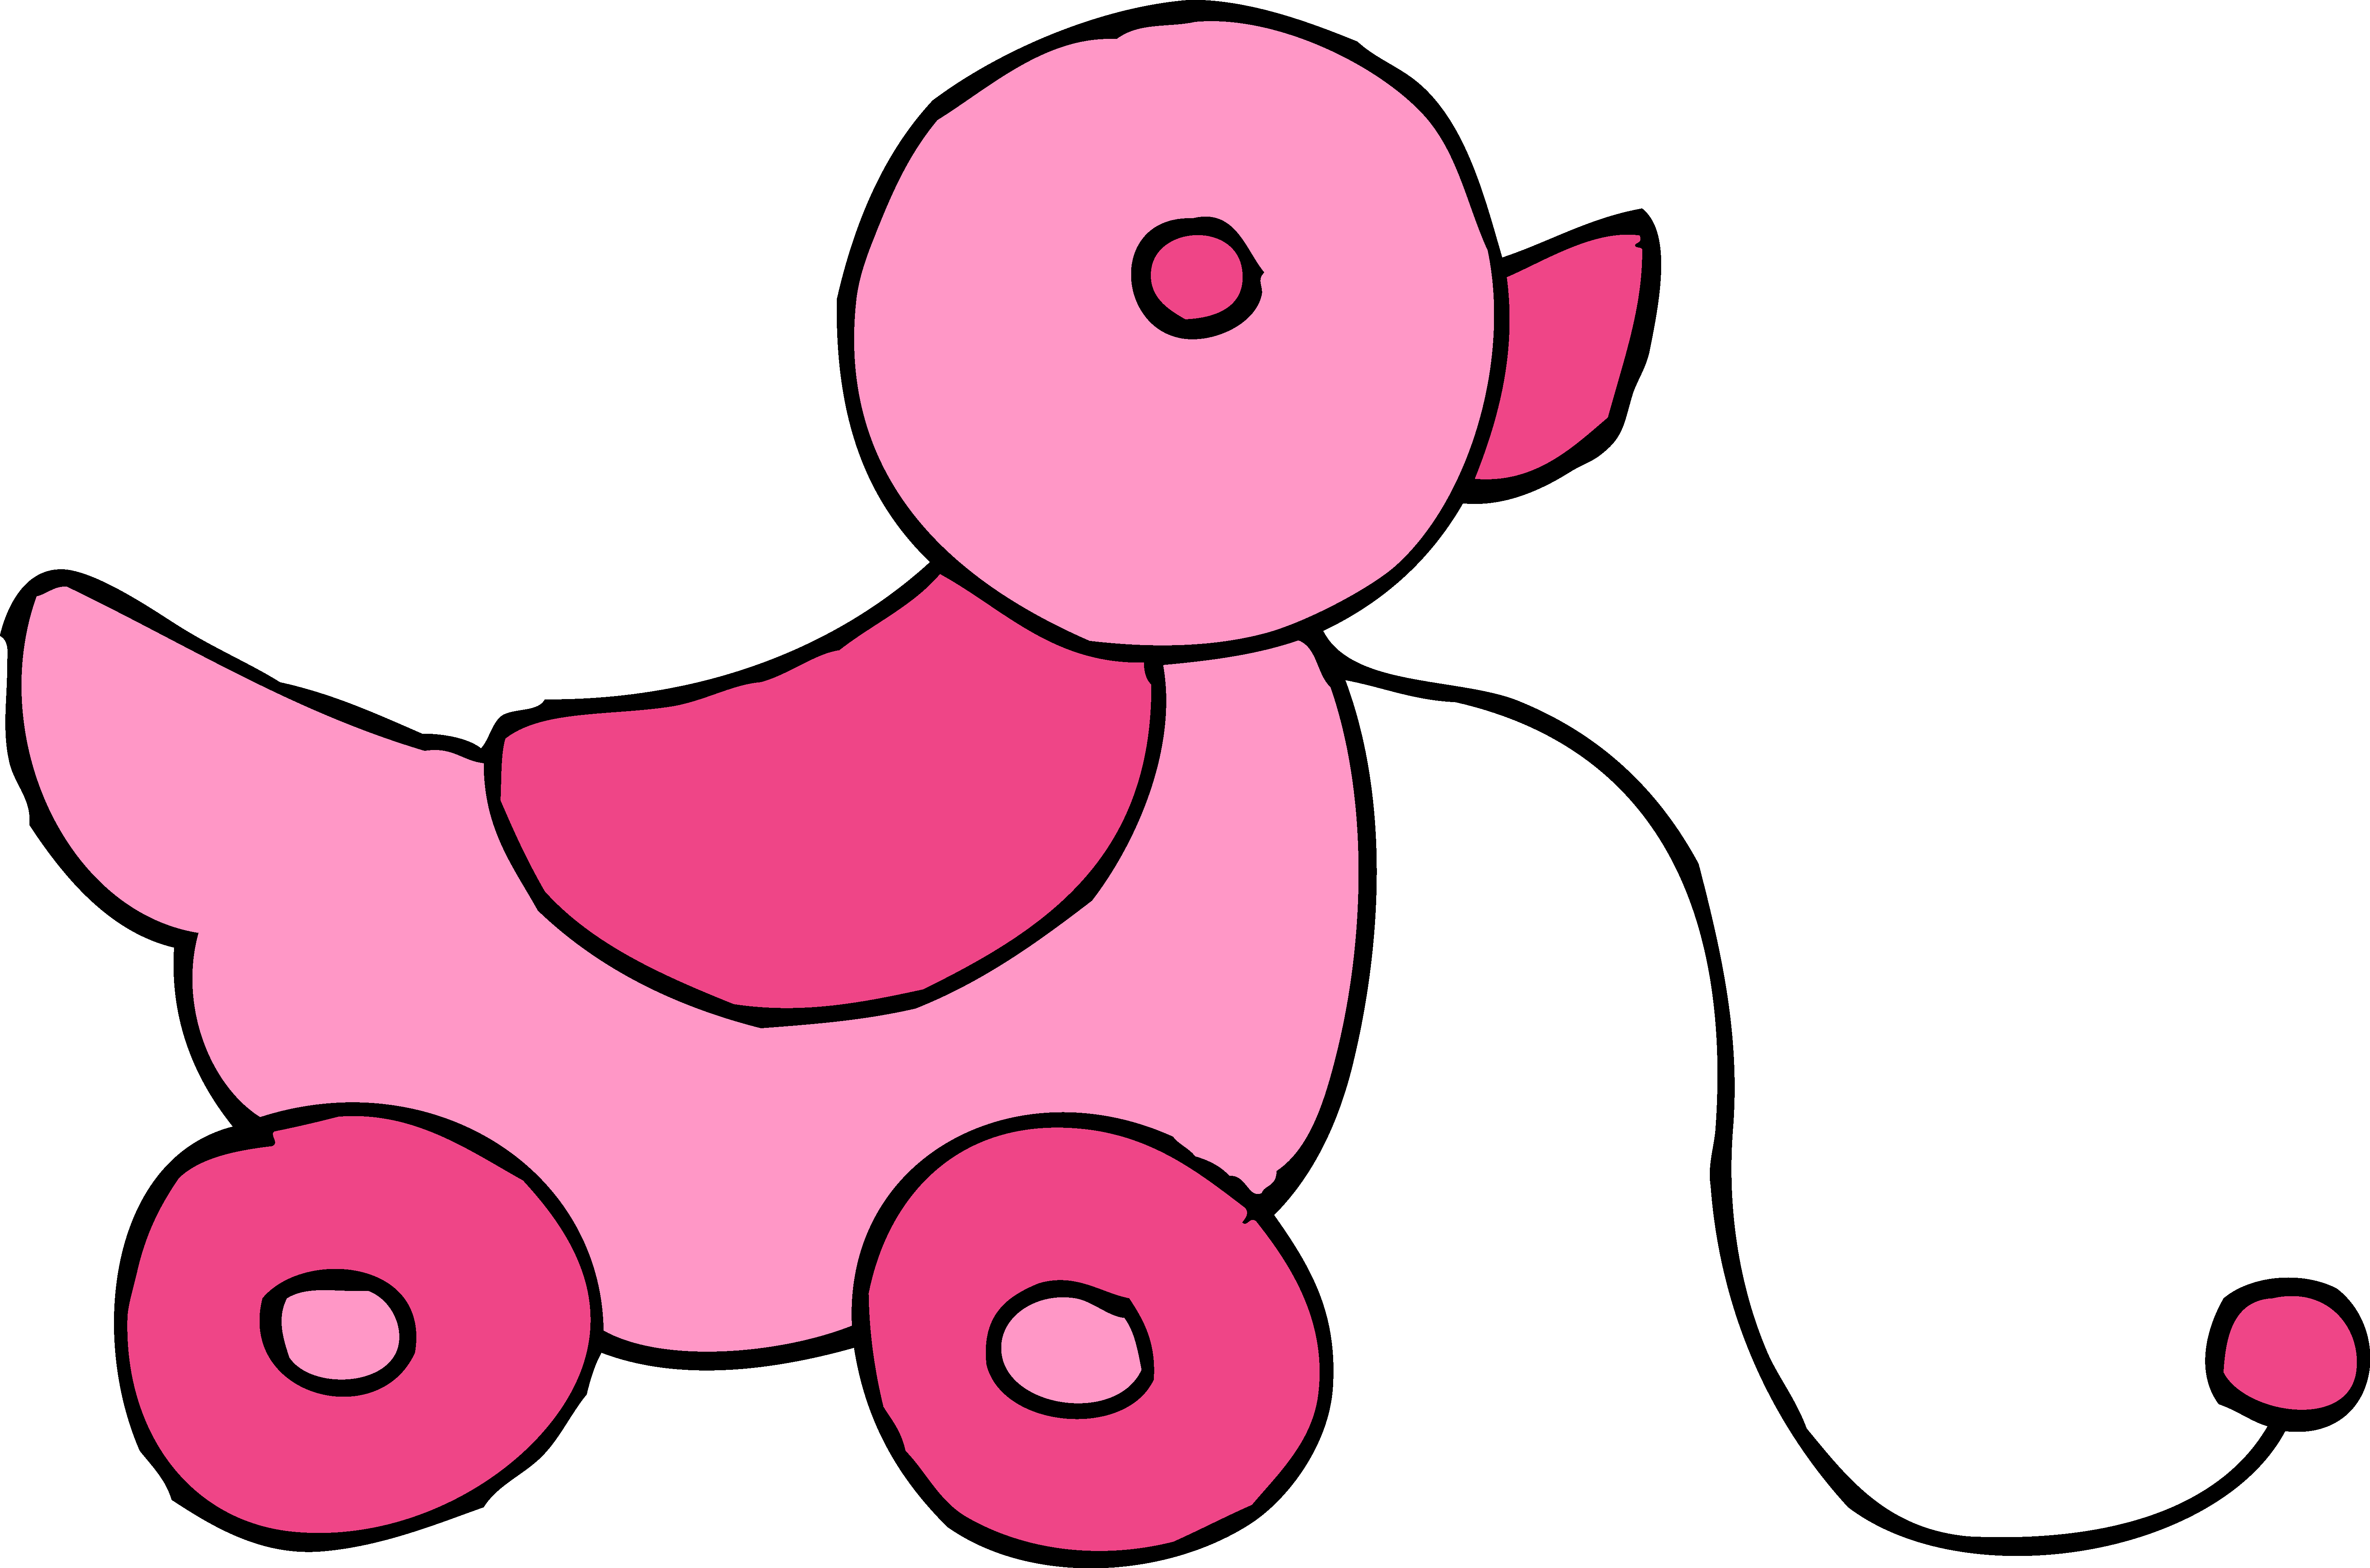 Toy clip art free. Wednesday clipart pink